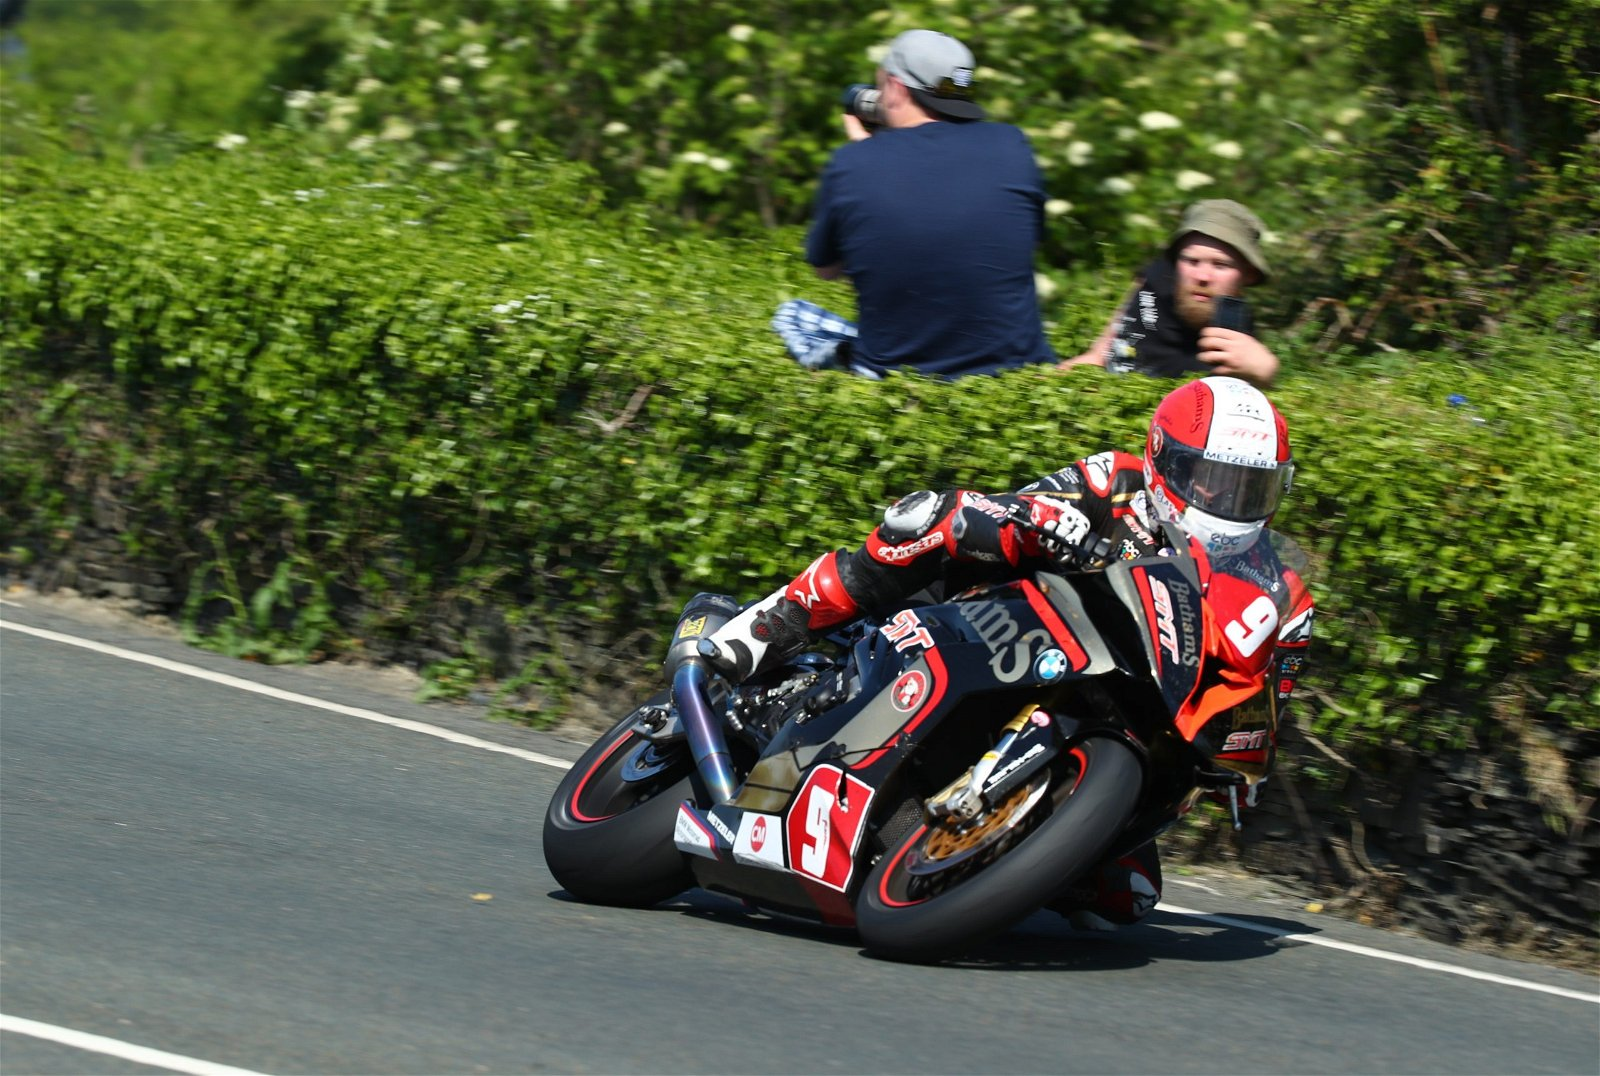 Michael Rutter and Batham SMT Racing